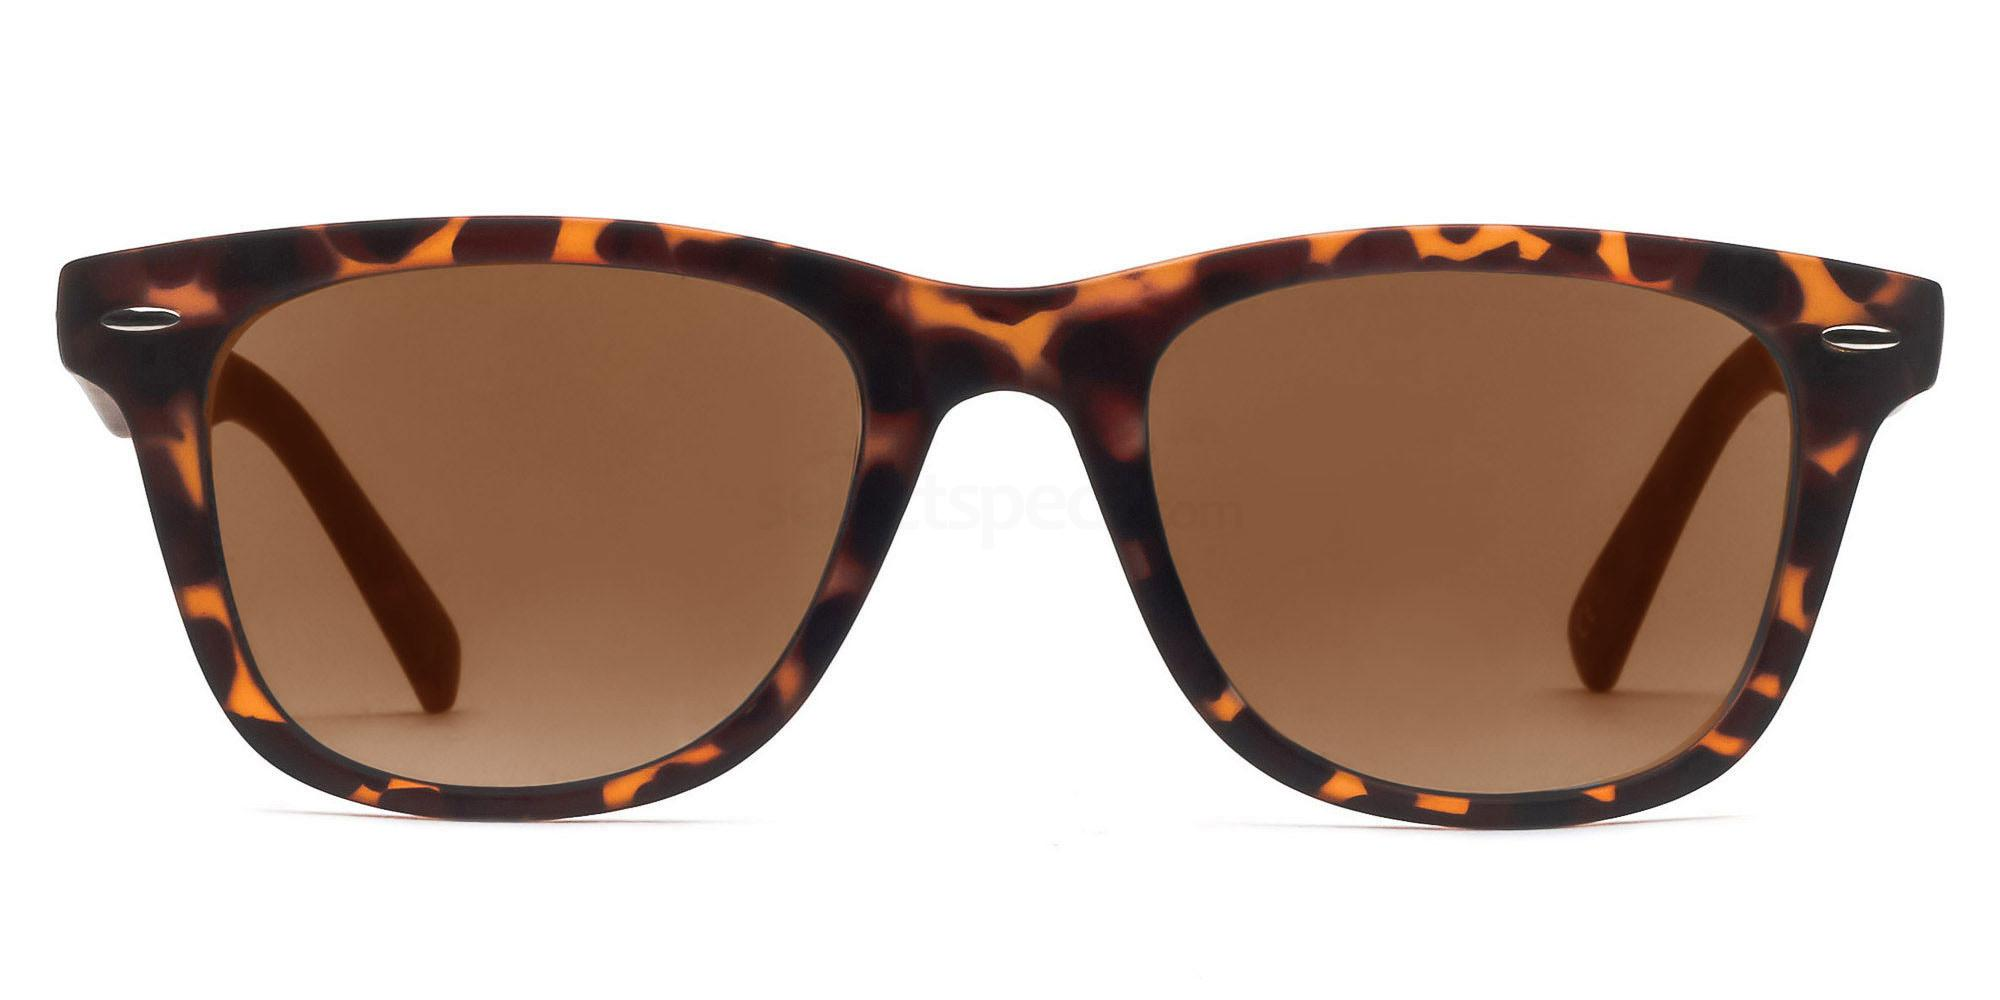 Savannah_8121_tortoise_sunglasses